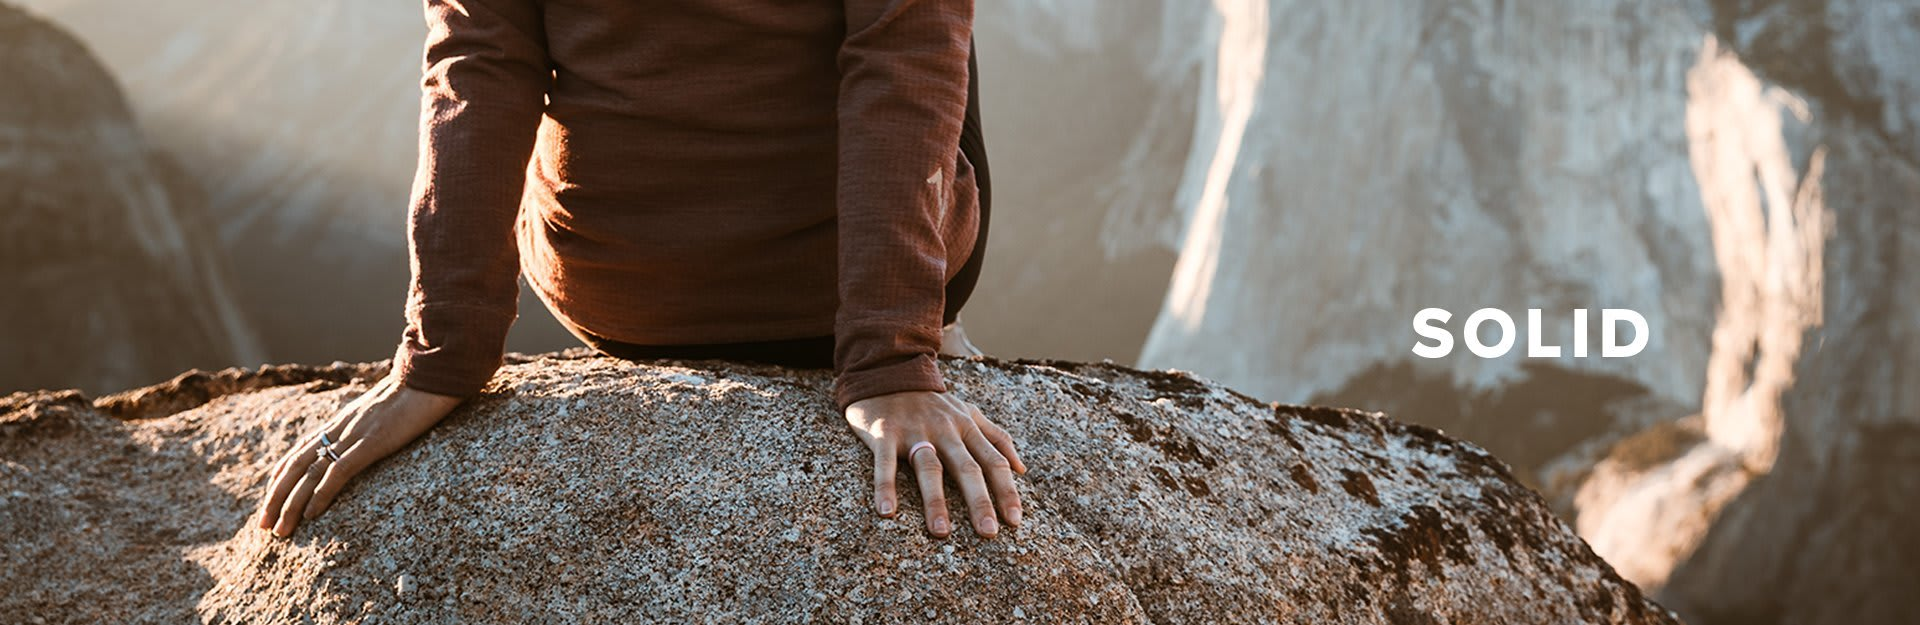 Solid, person sitting on a large boulder